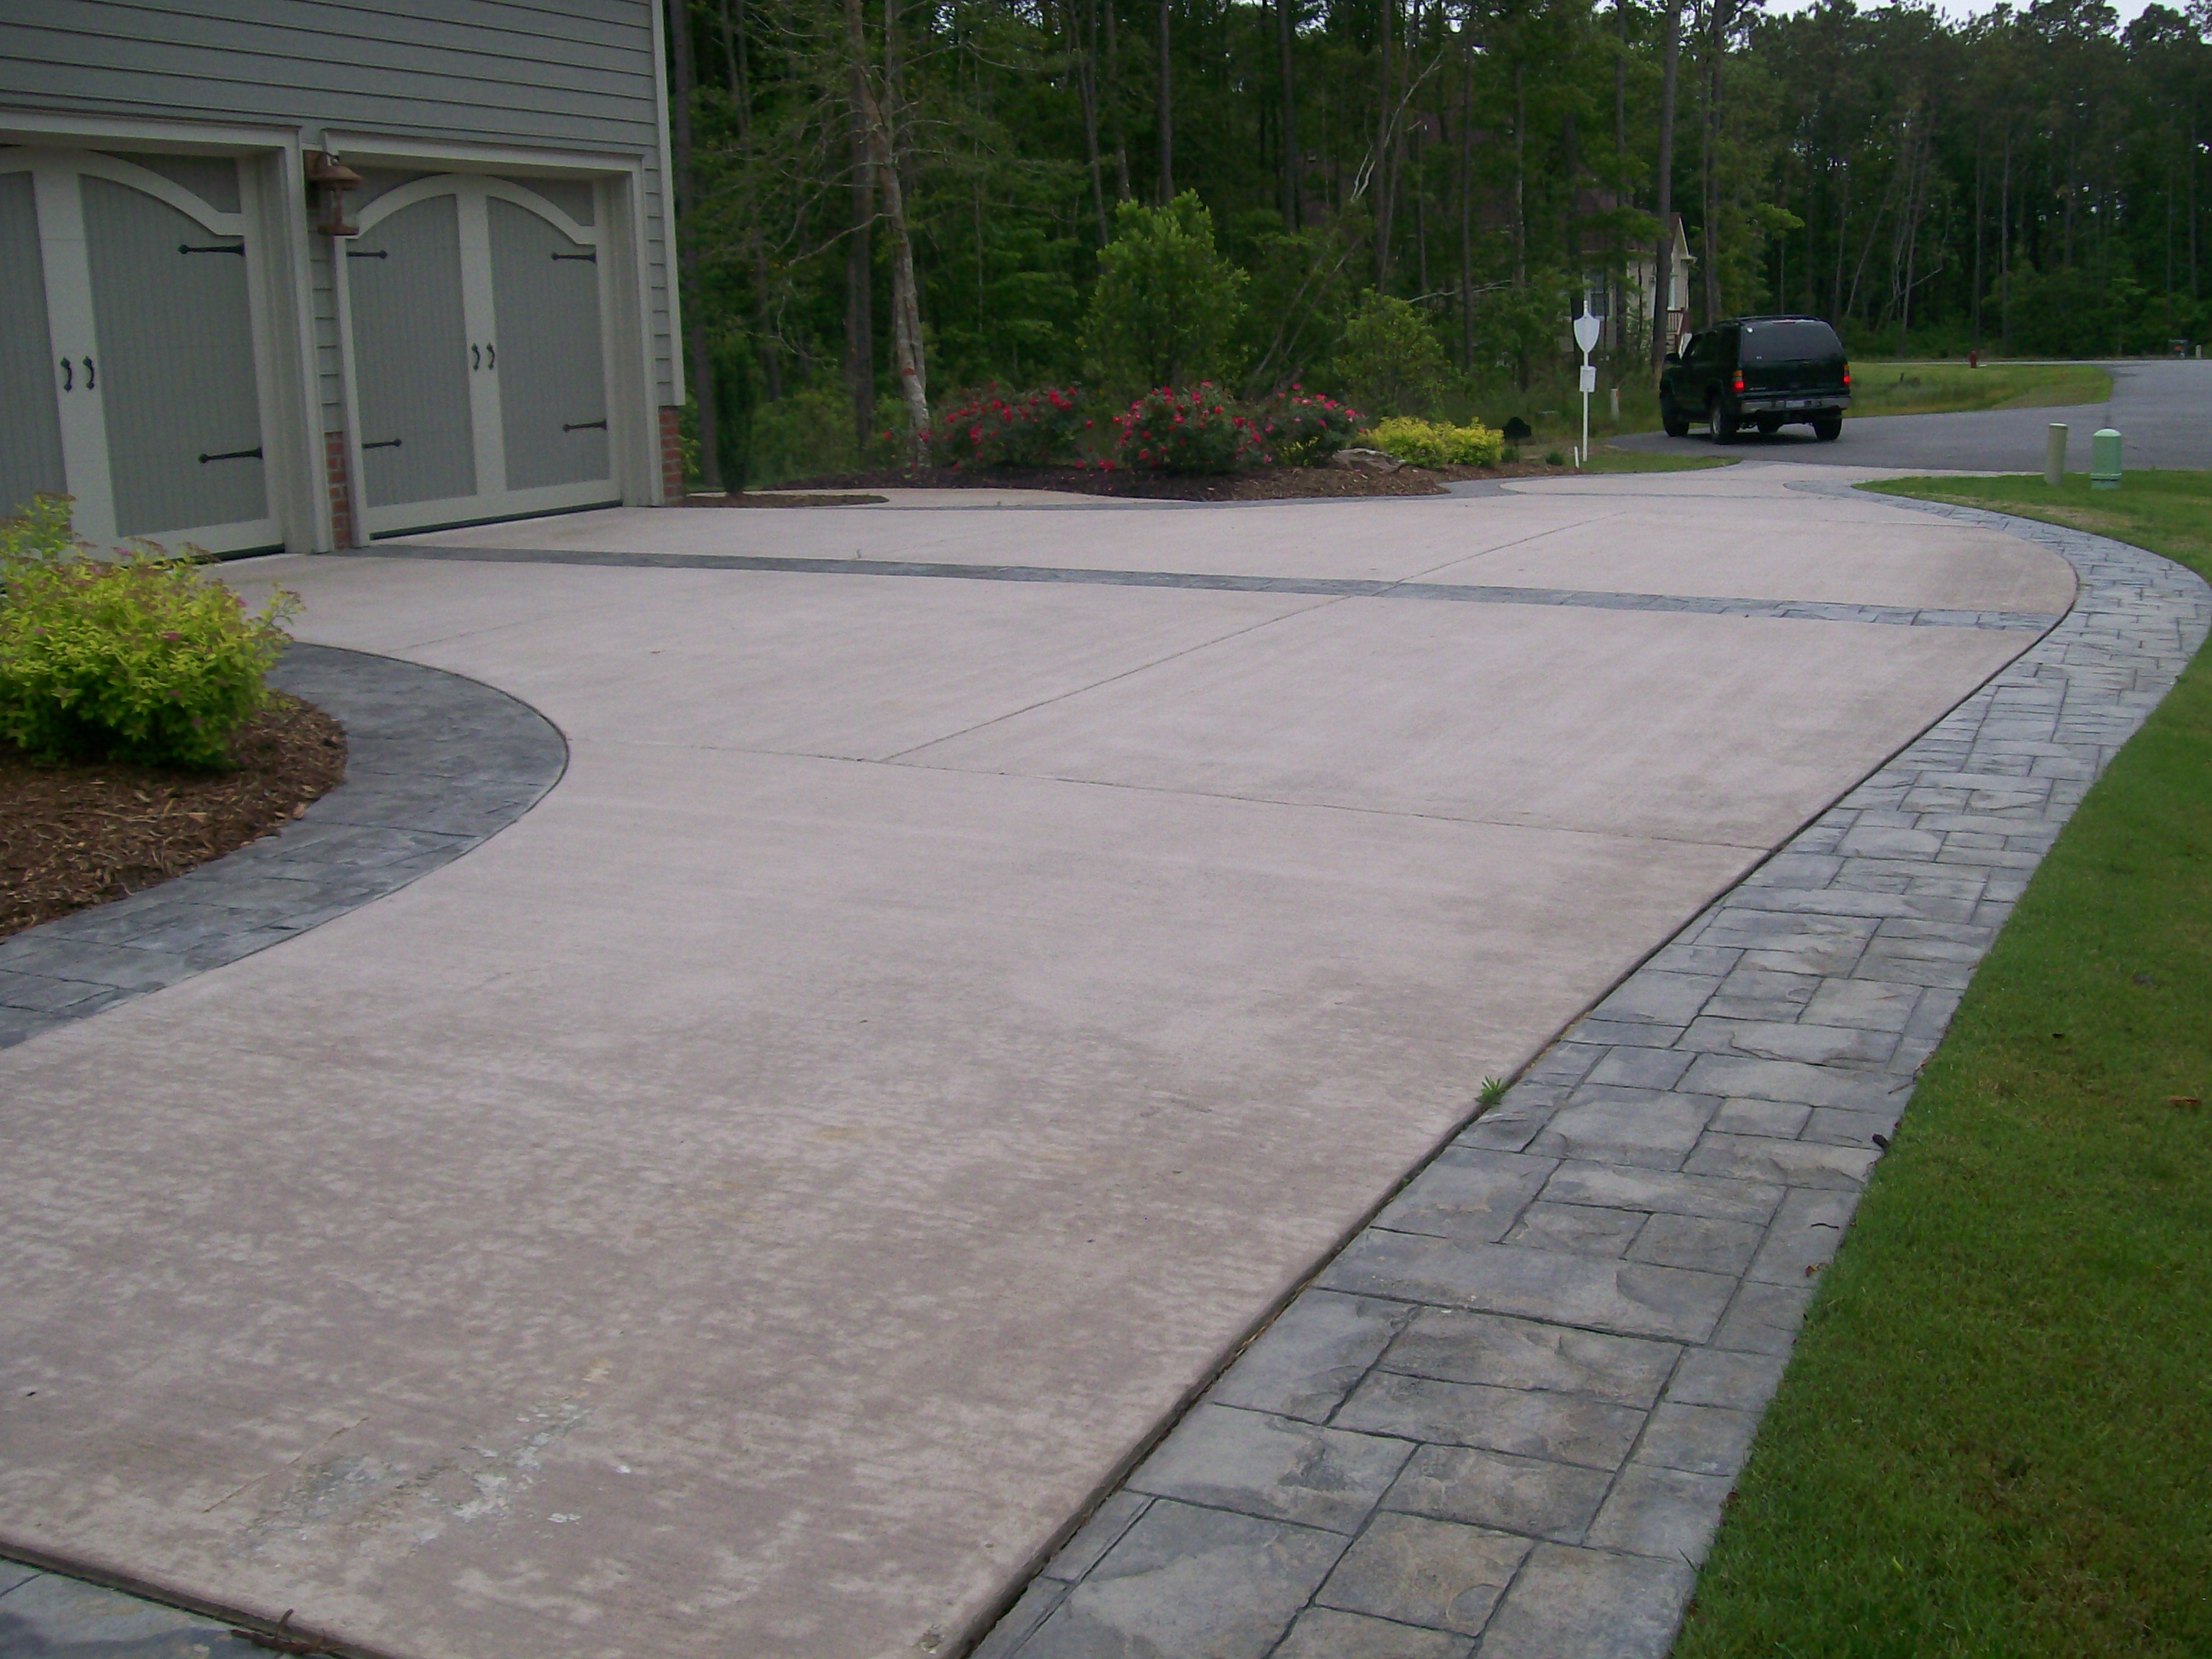 Stamped Concrete Driveways : Concrete stamped border driveway with broom finish interior